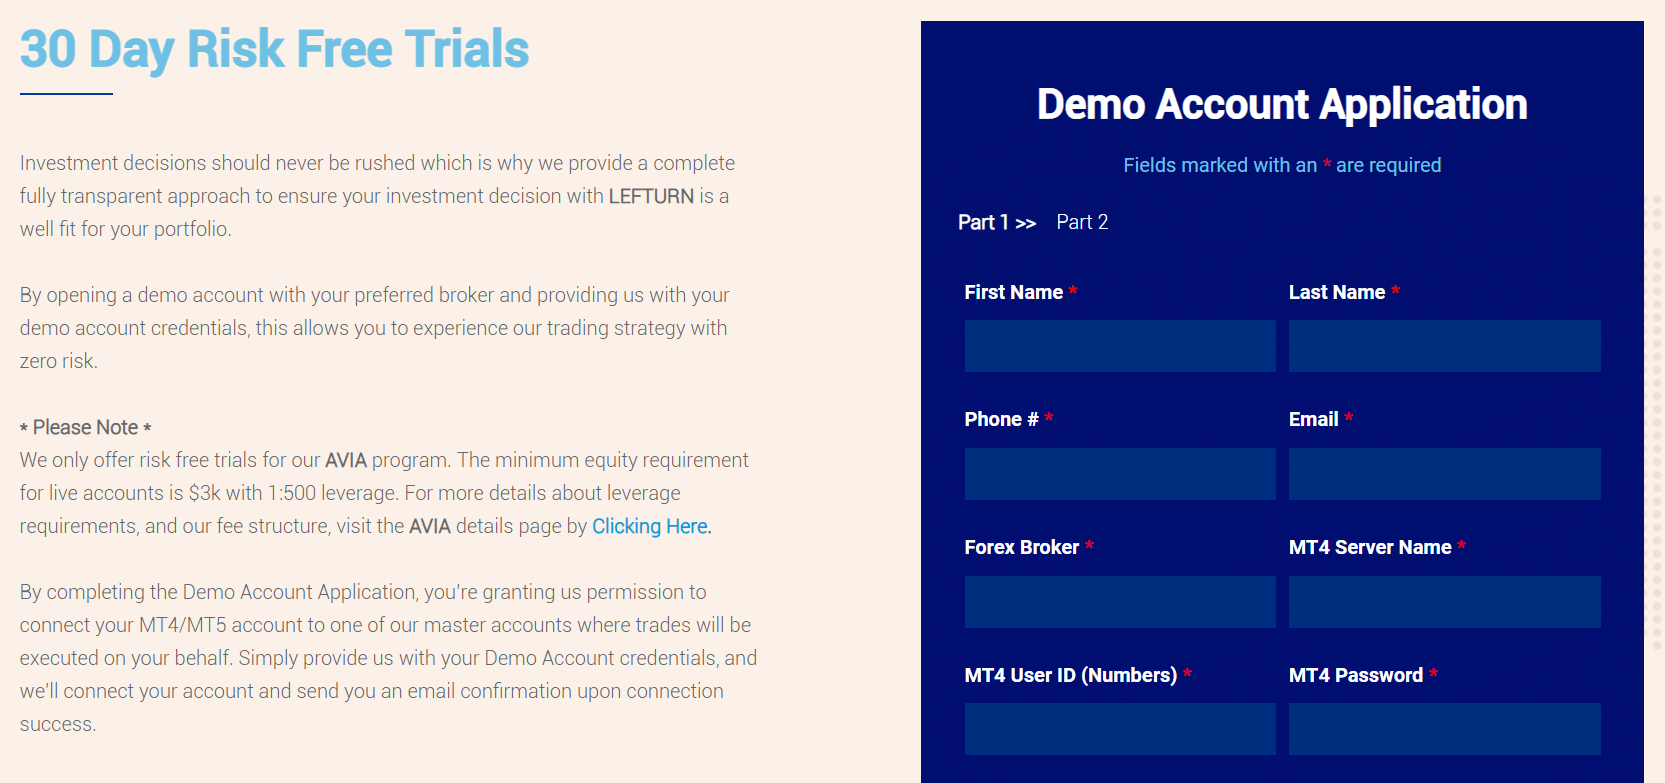 A 30-day free trial